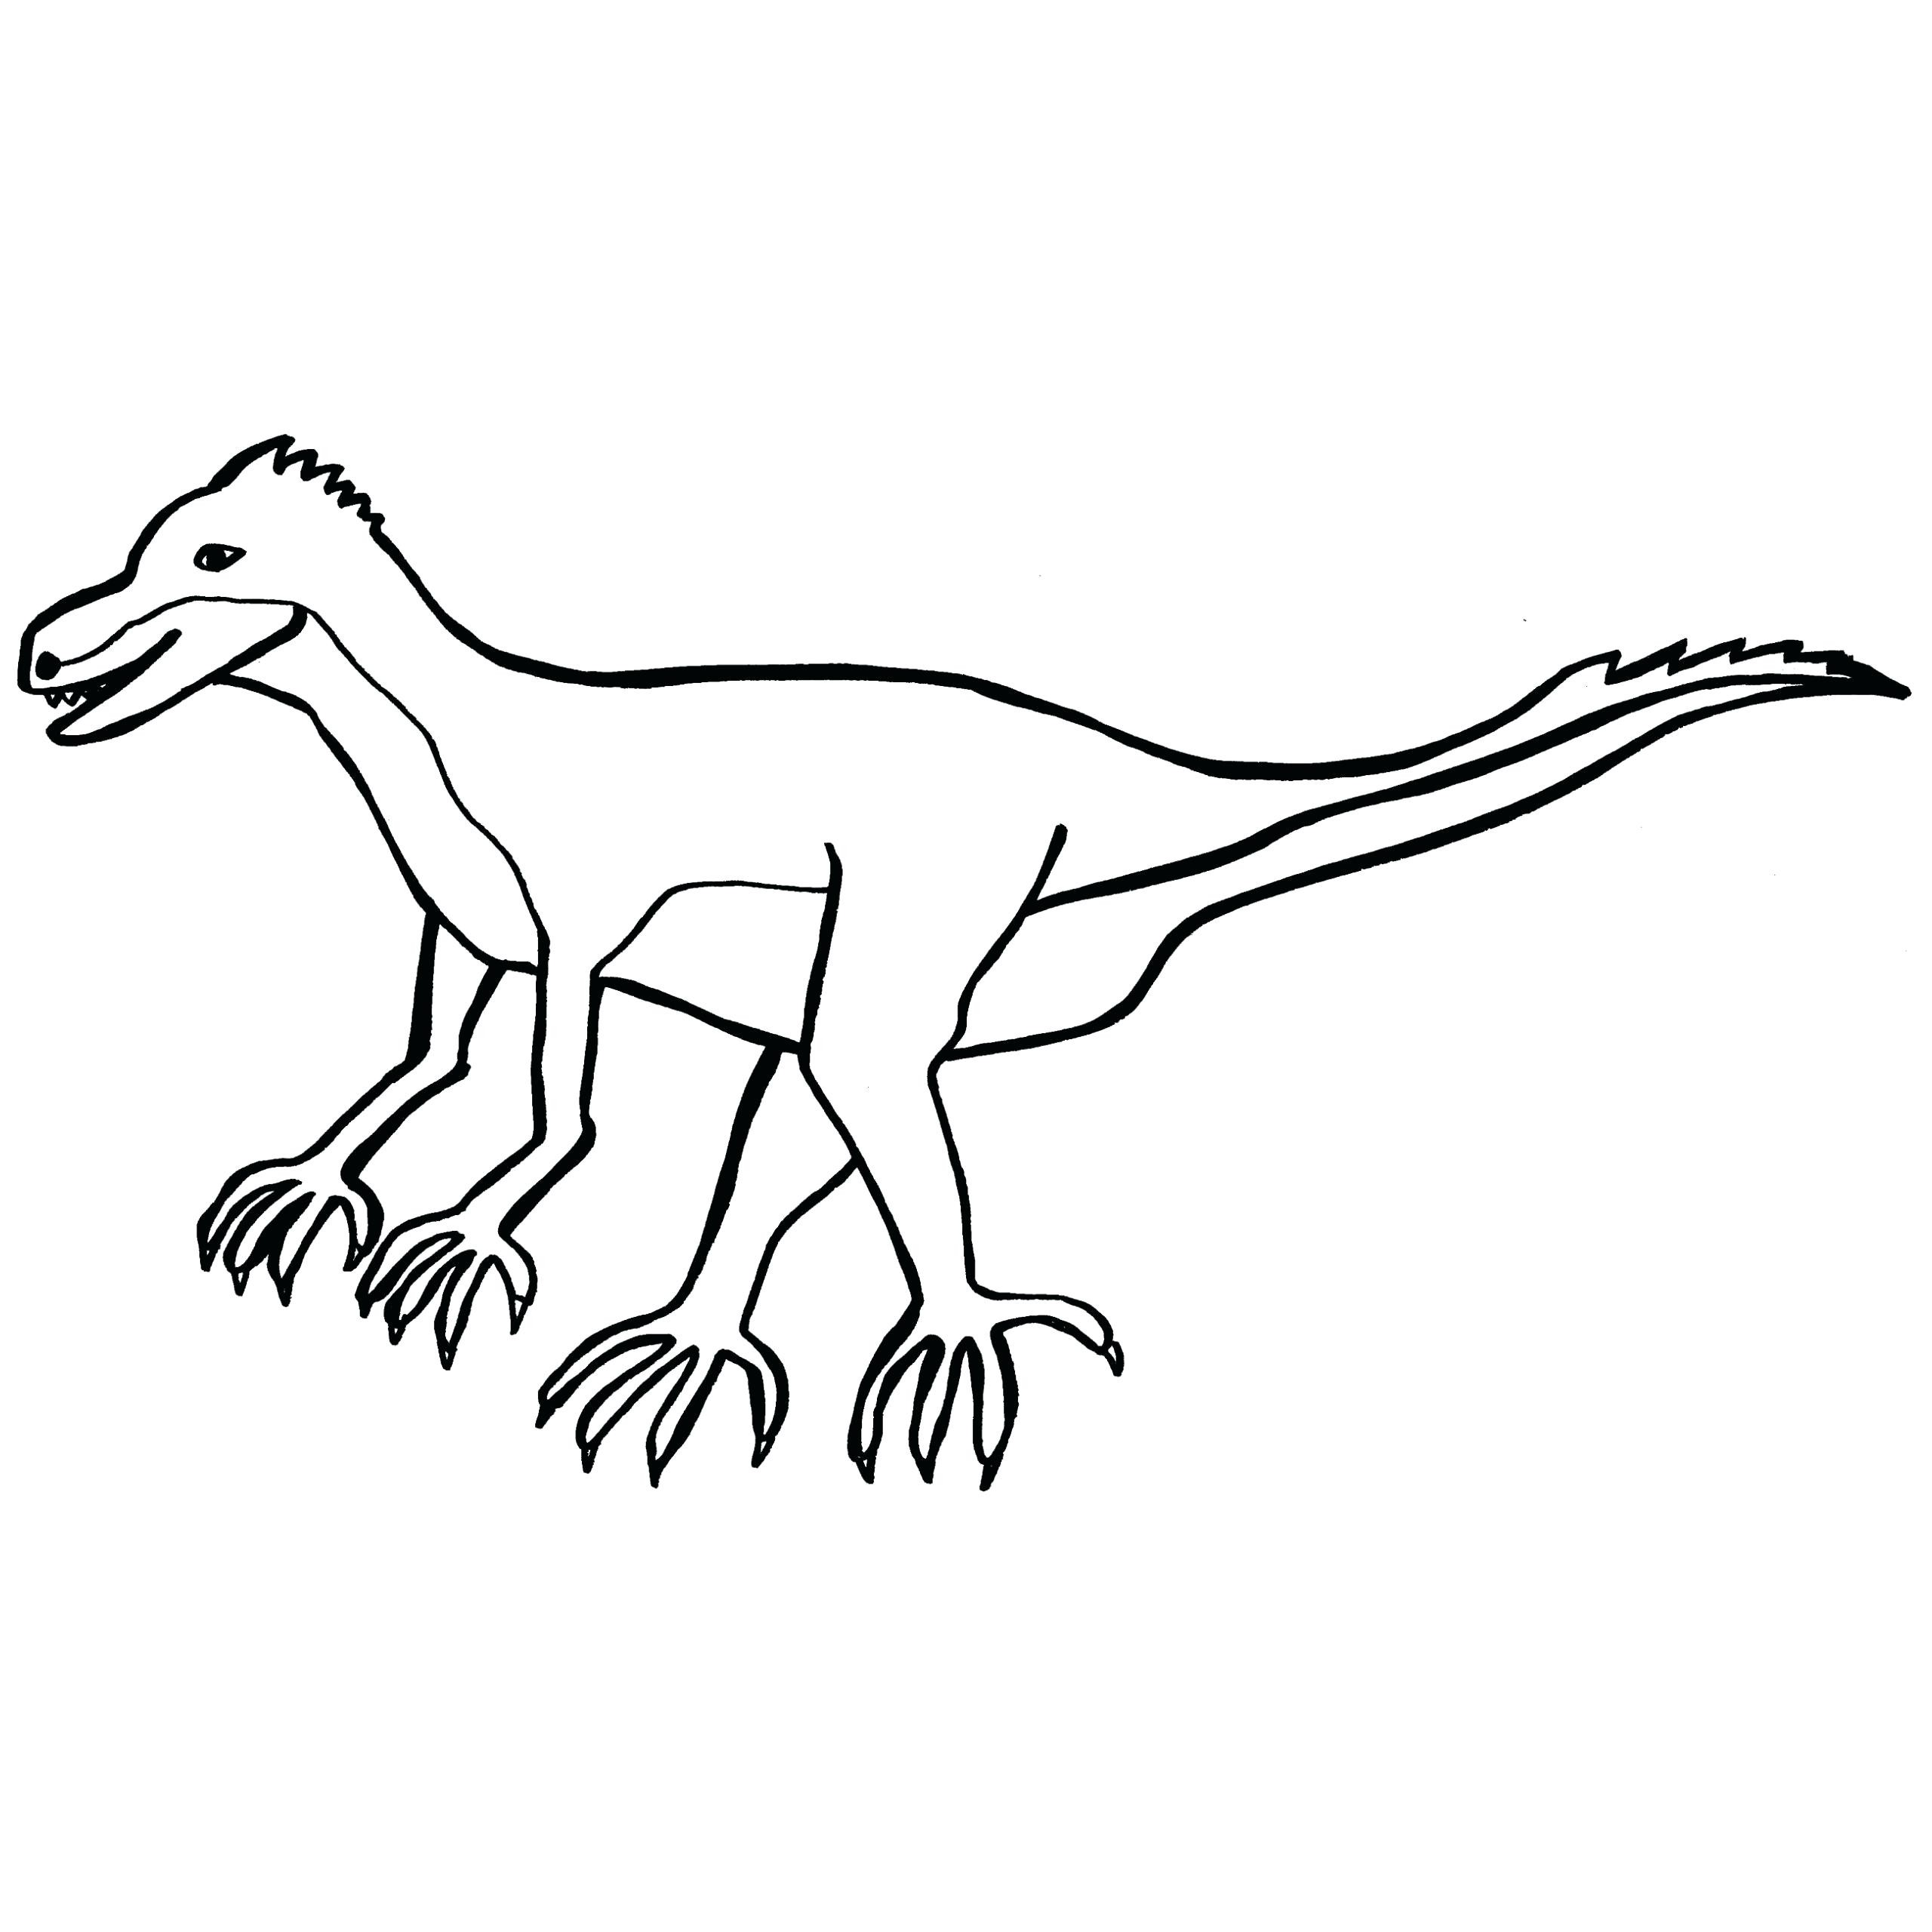 2560x2560 Brachiosaurus Dinosaur And Mountains Coloring Pages For Kids